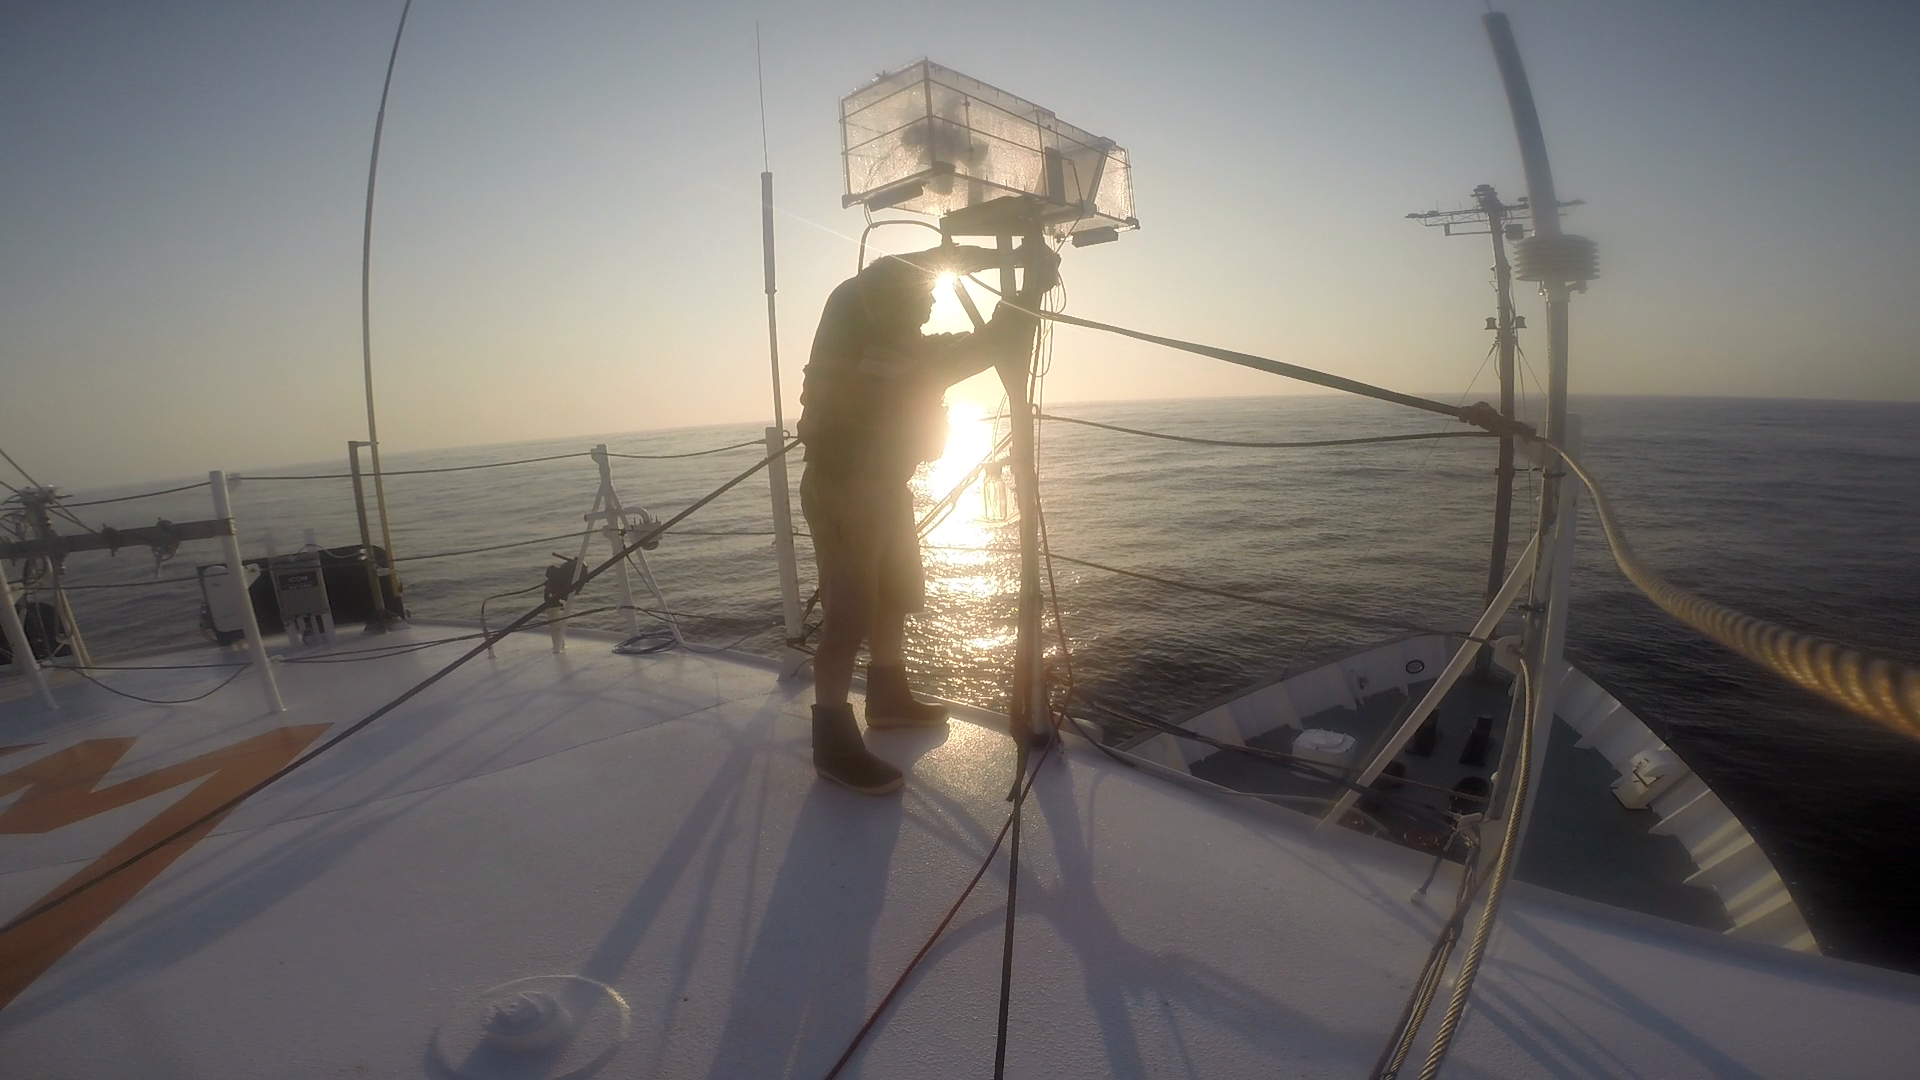 Collecting fog samples shortly after escaping an offshore fog bank.